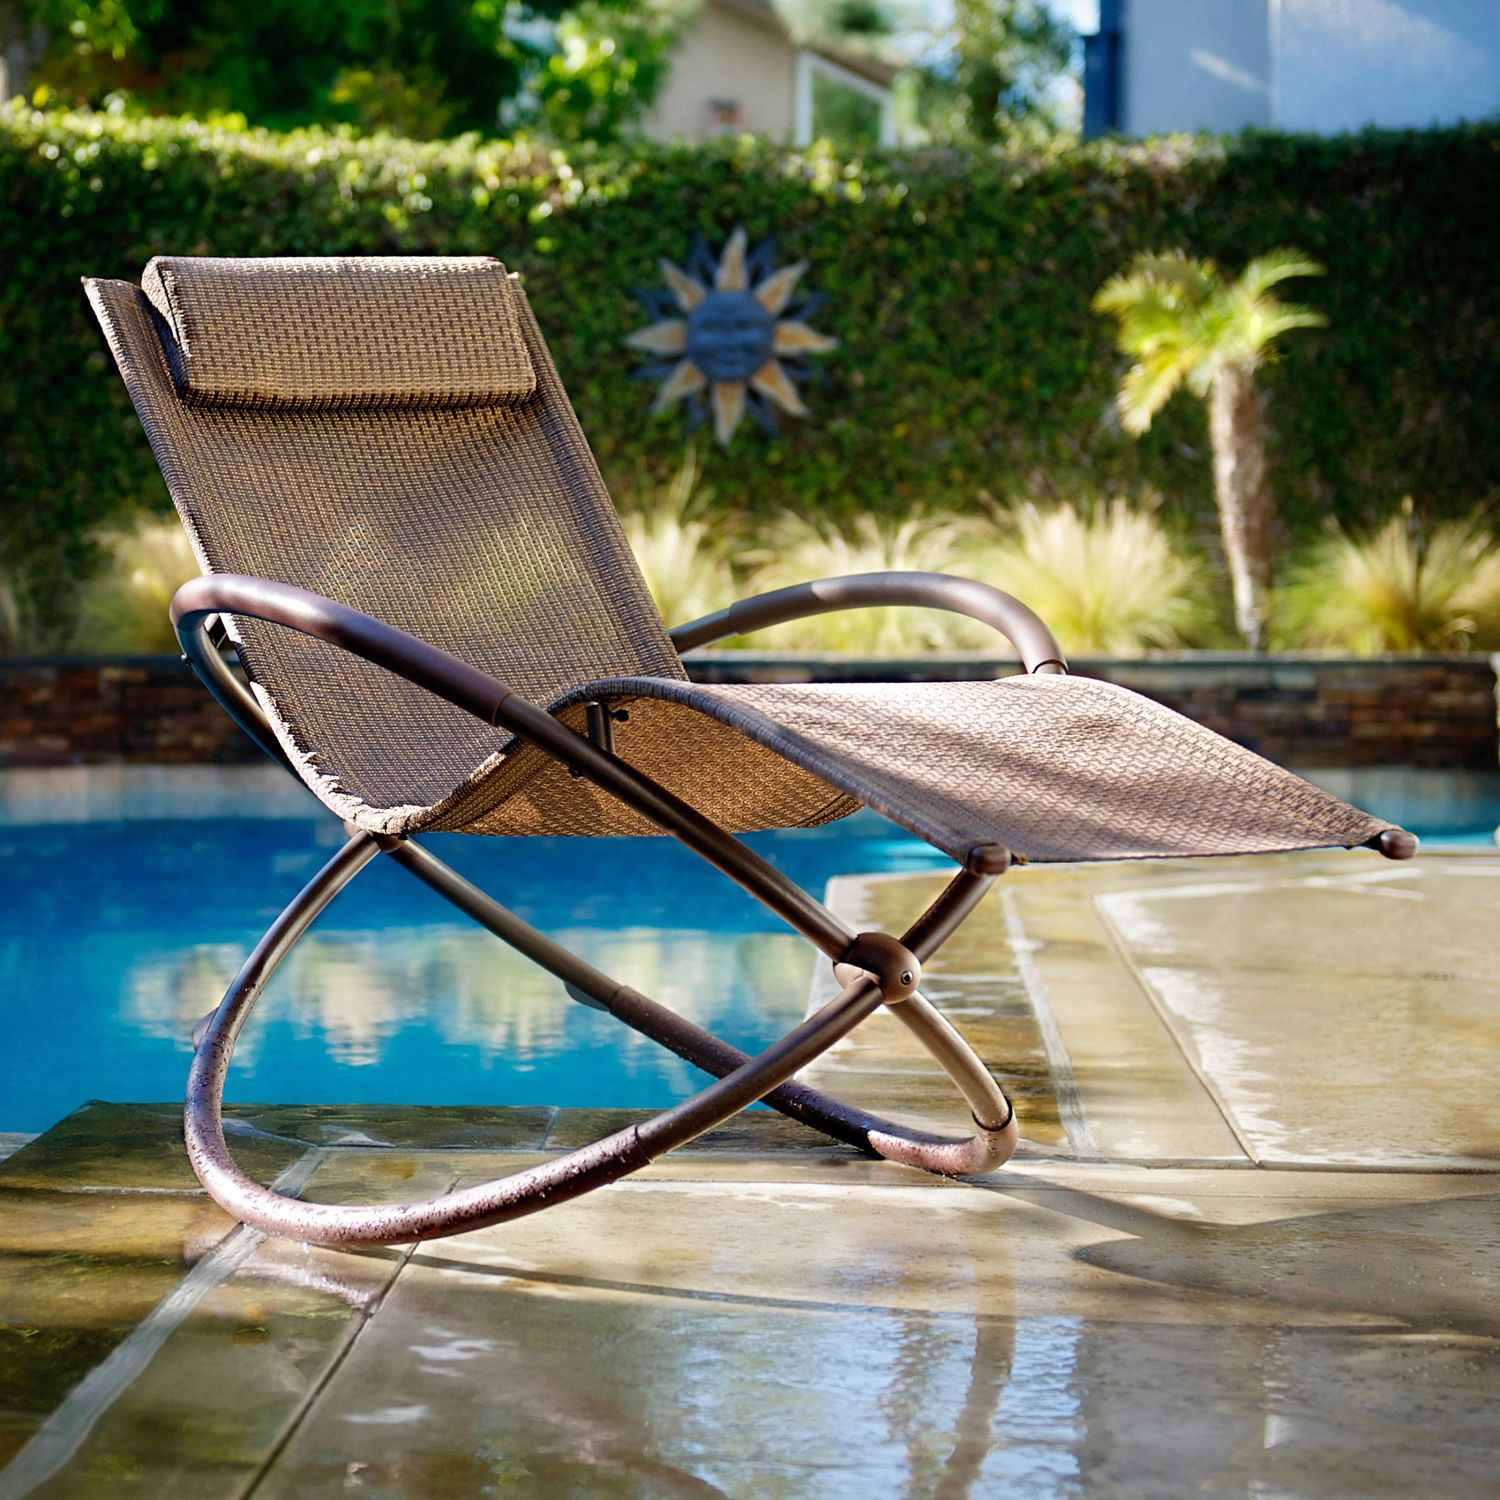 RST Brands Orbital Zero Gravity Patio Lounger Rocking Chair by RST